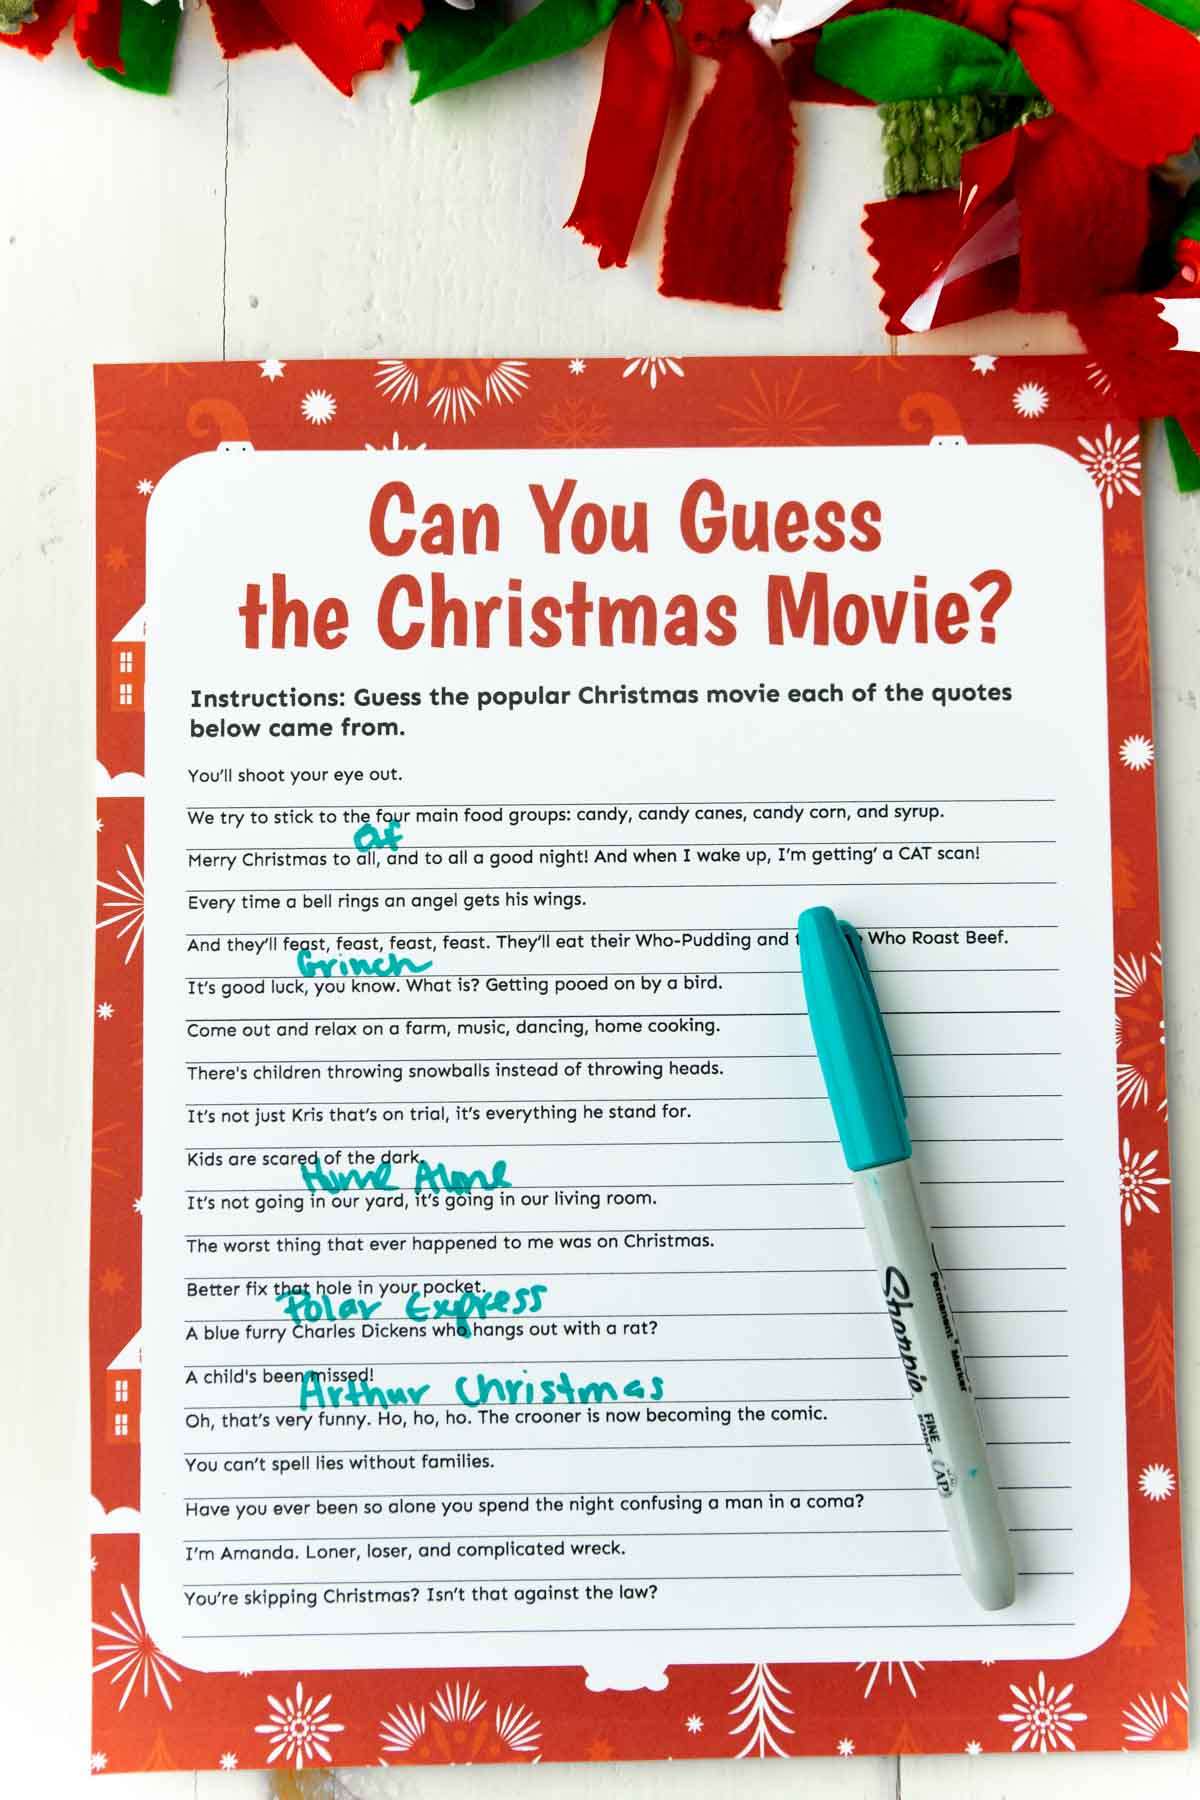 A Christmas movie trivia game with a green pen on top